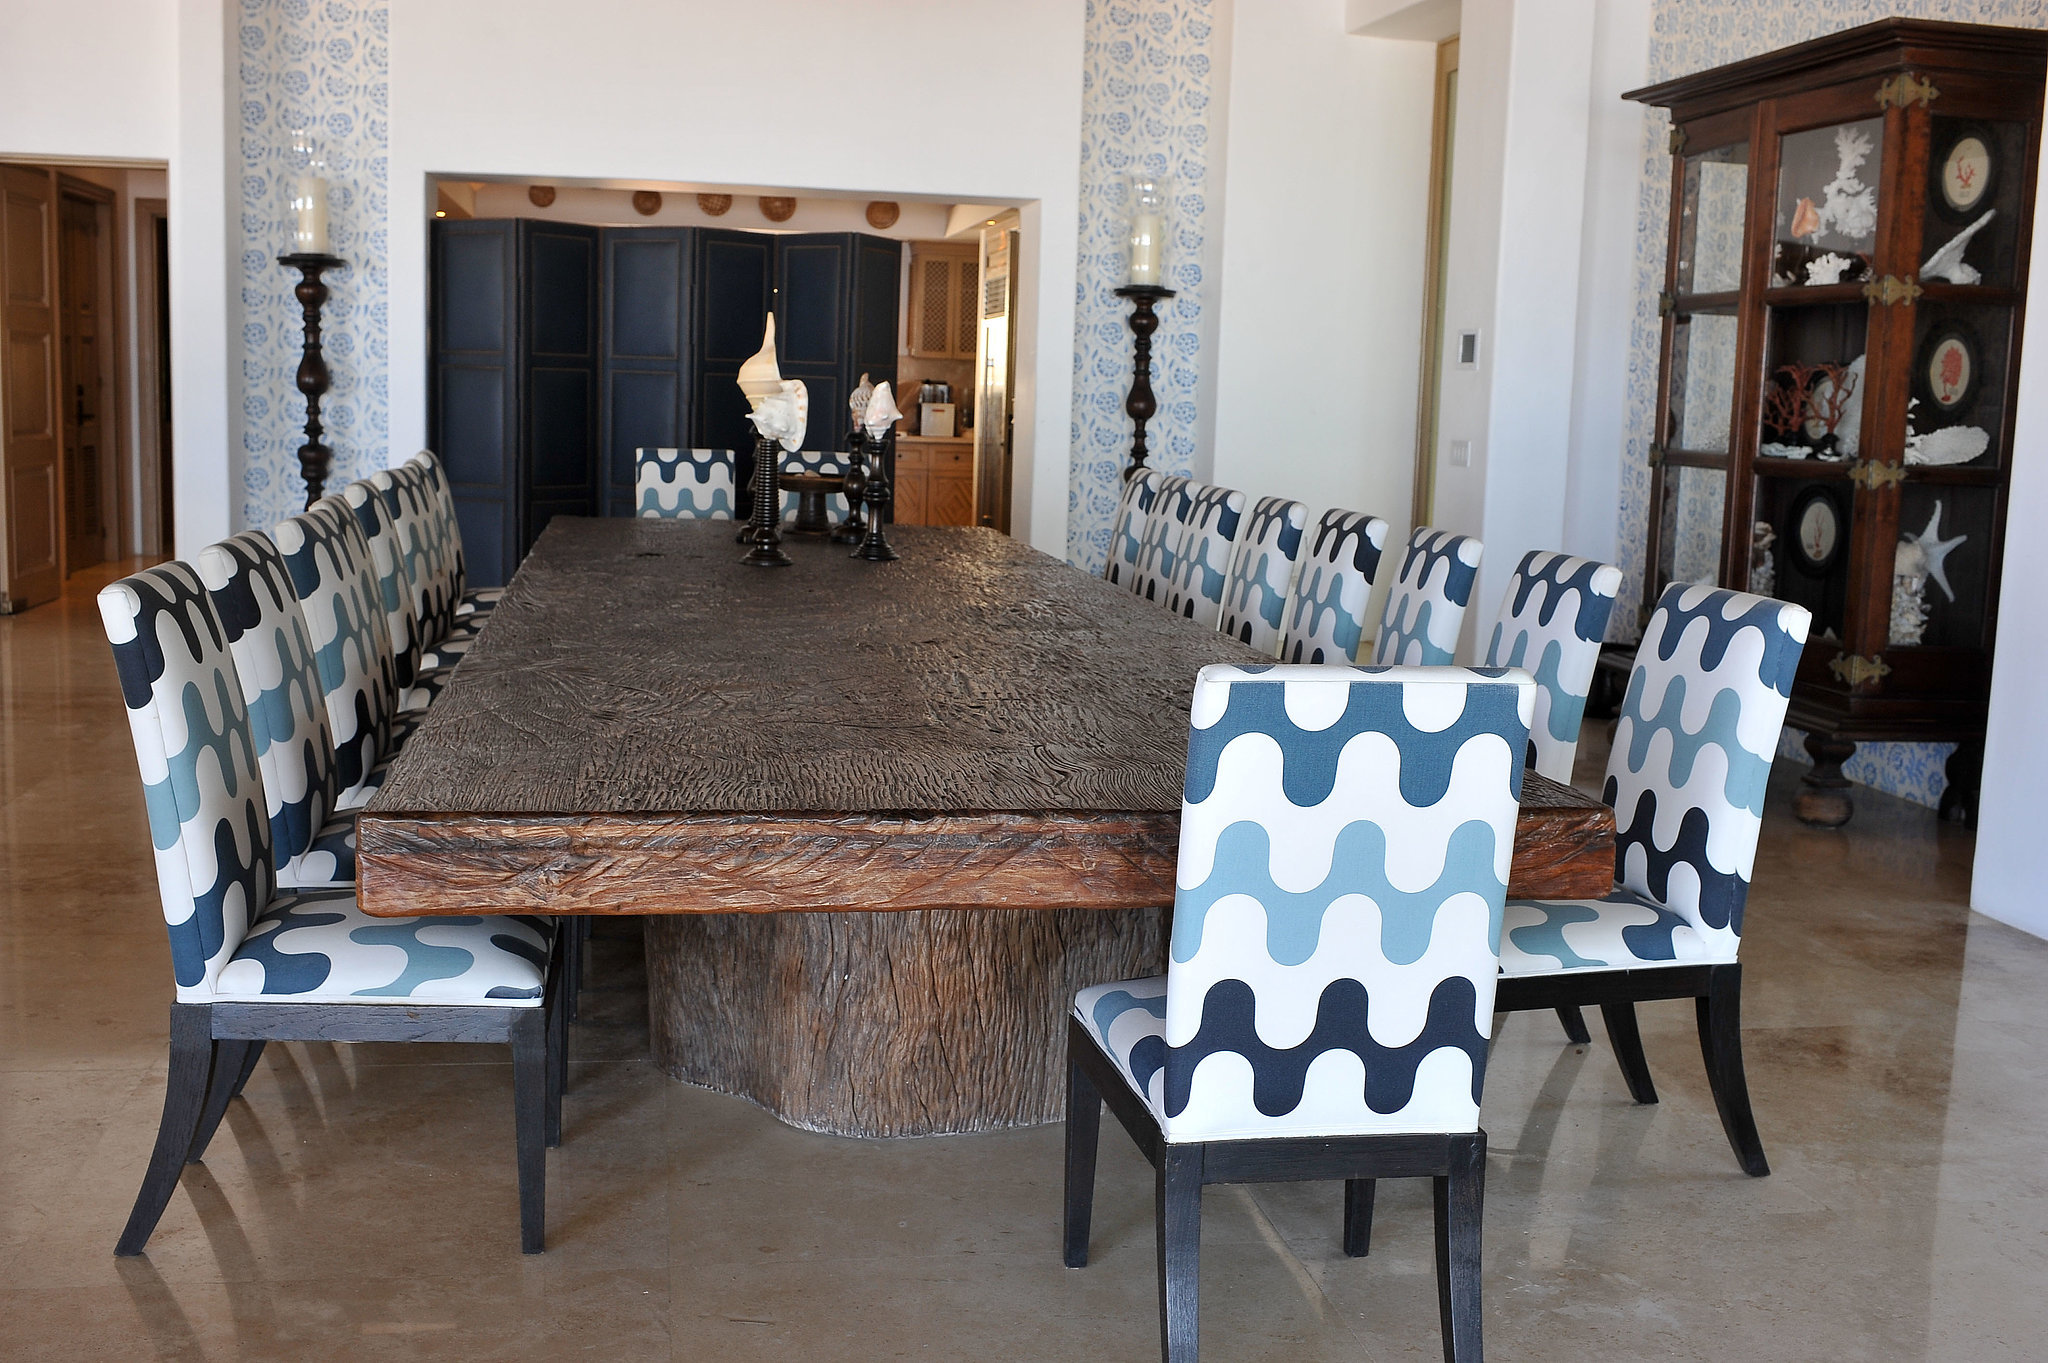 Fit for entertaining, the dining room has more than enough room for guests.